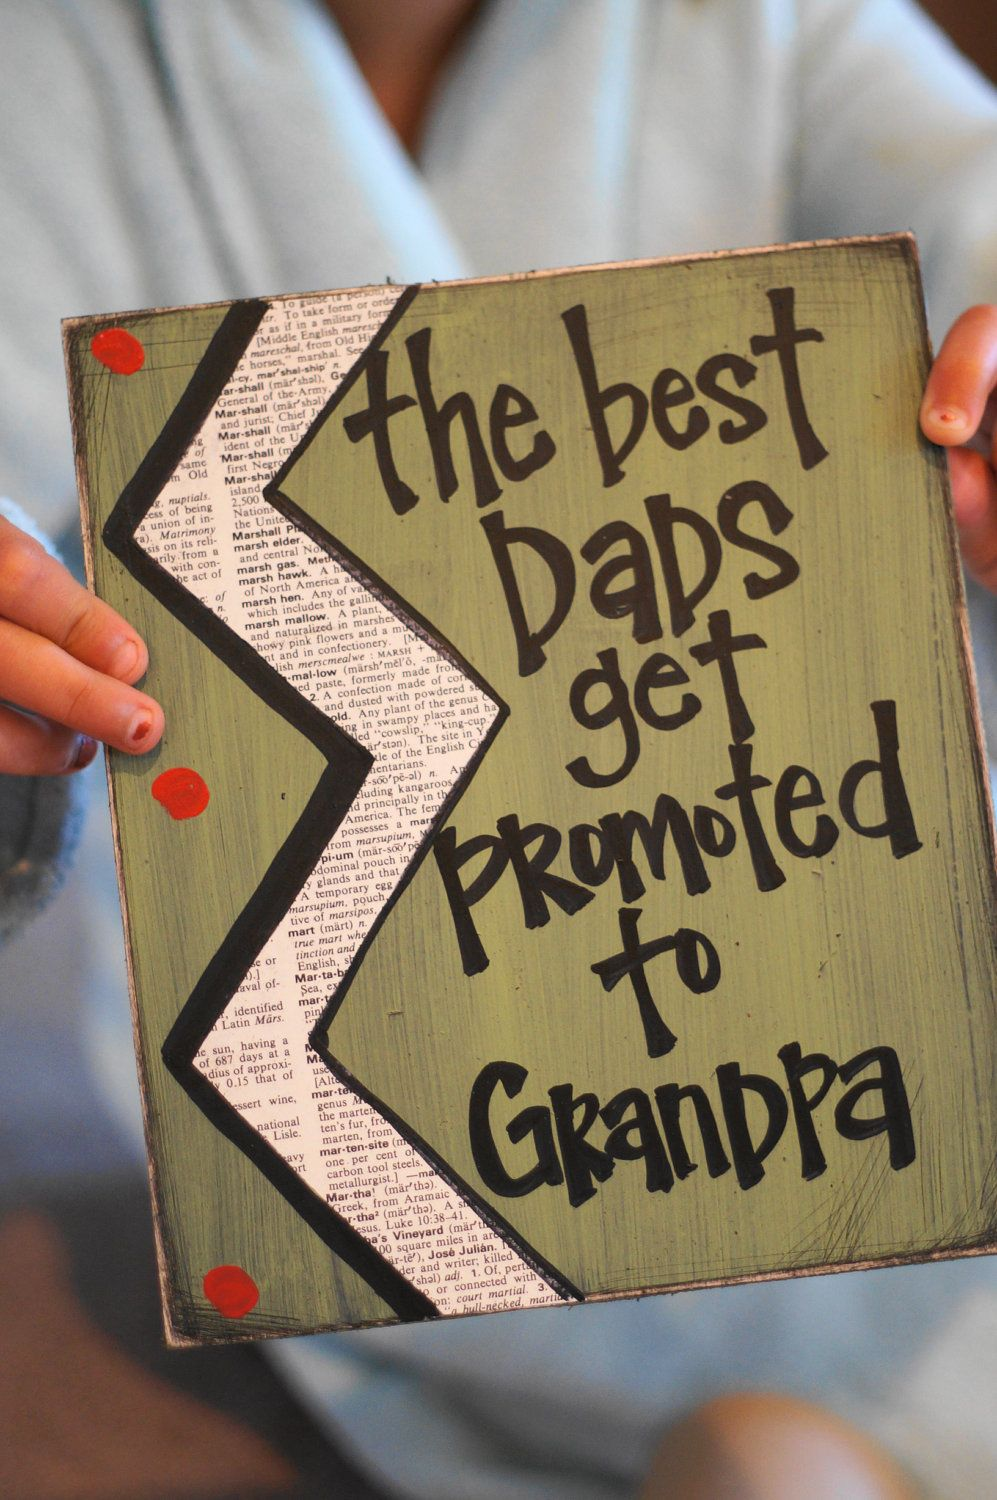 Best Dad S Get Promoted To Grandpa Card Grandparents Dads And